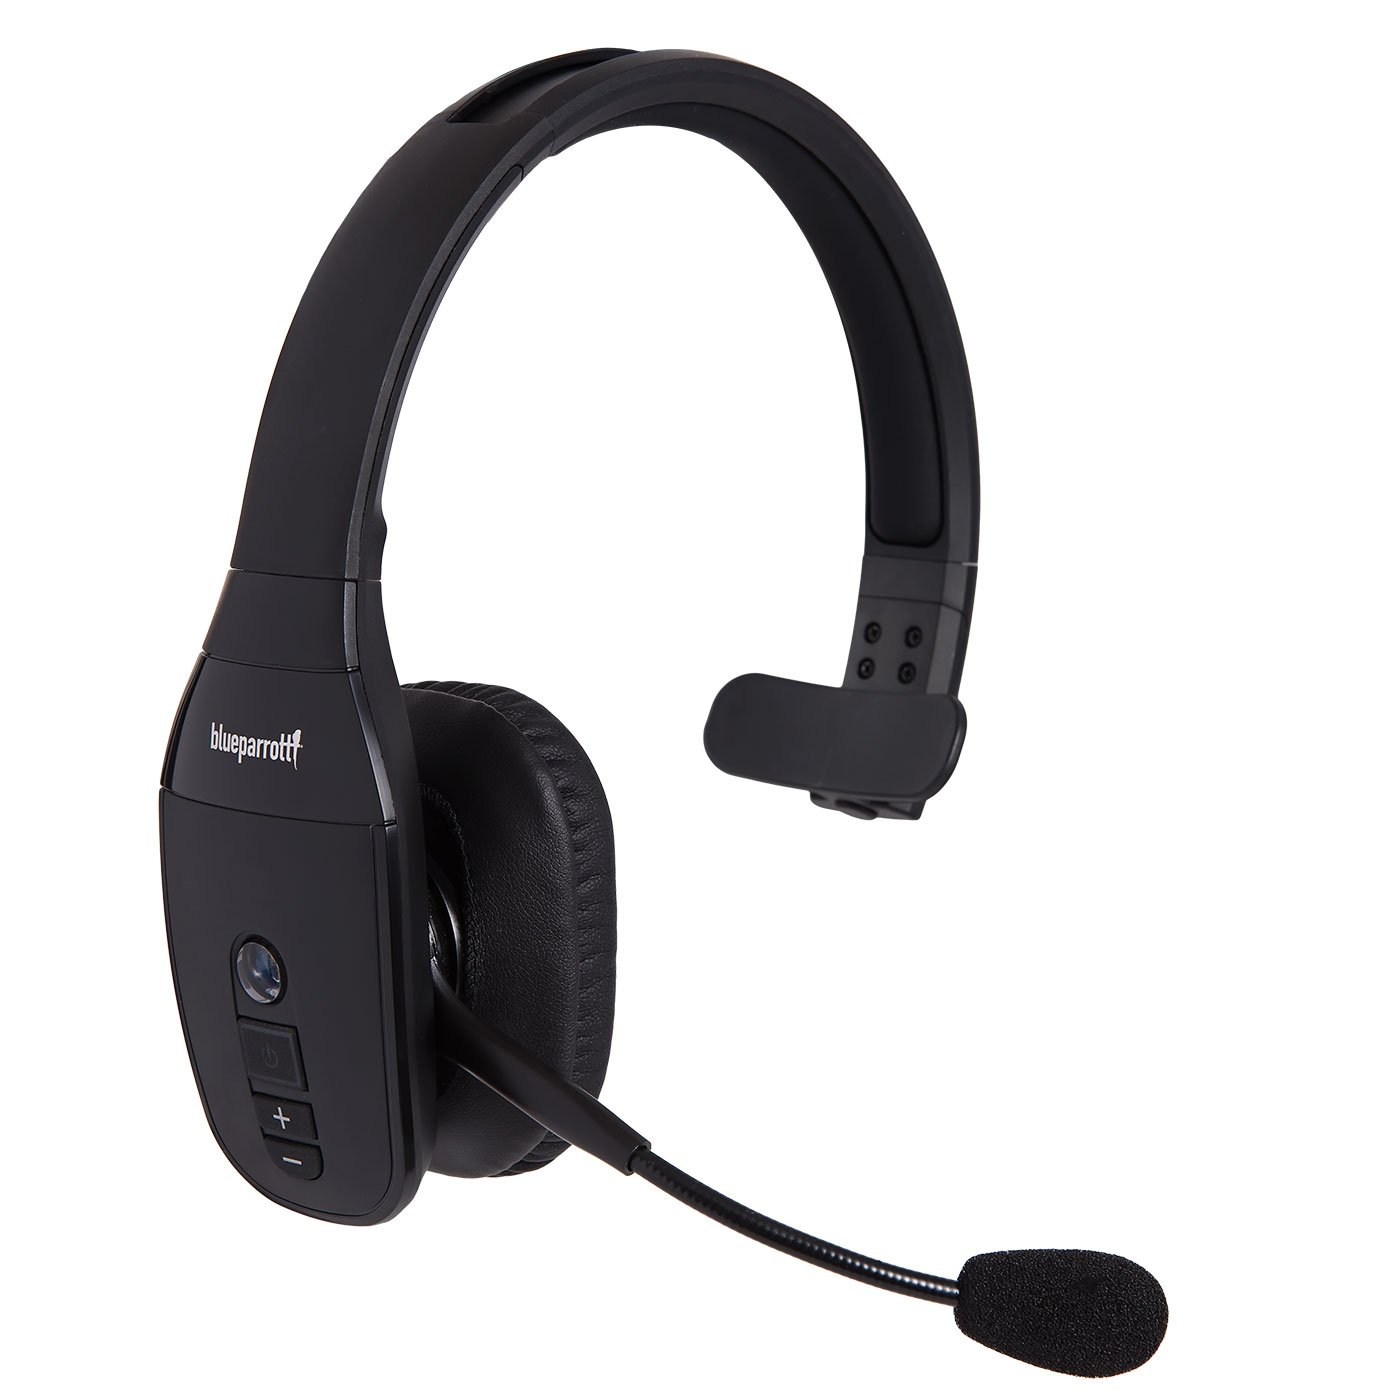 BlueParrott B450-XT Noise Canceling Bluetooth Headset by BlueParrott